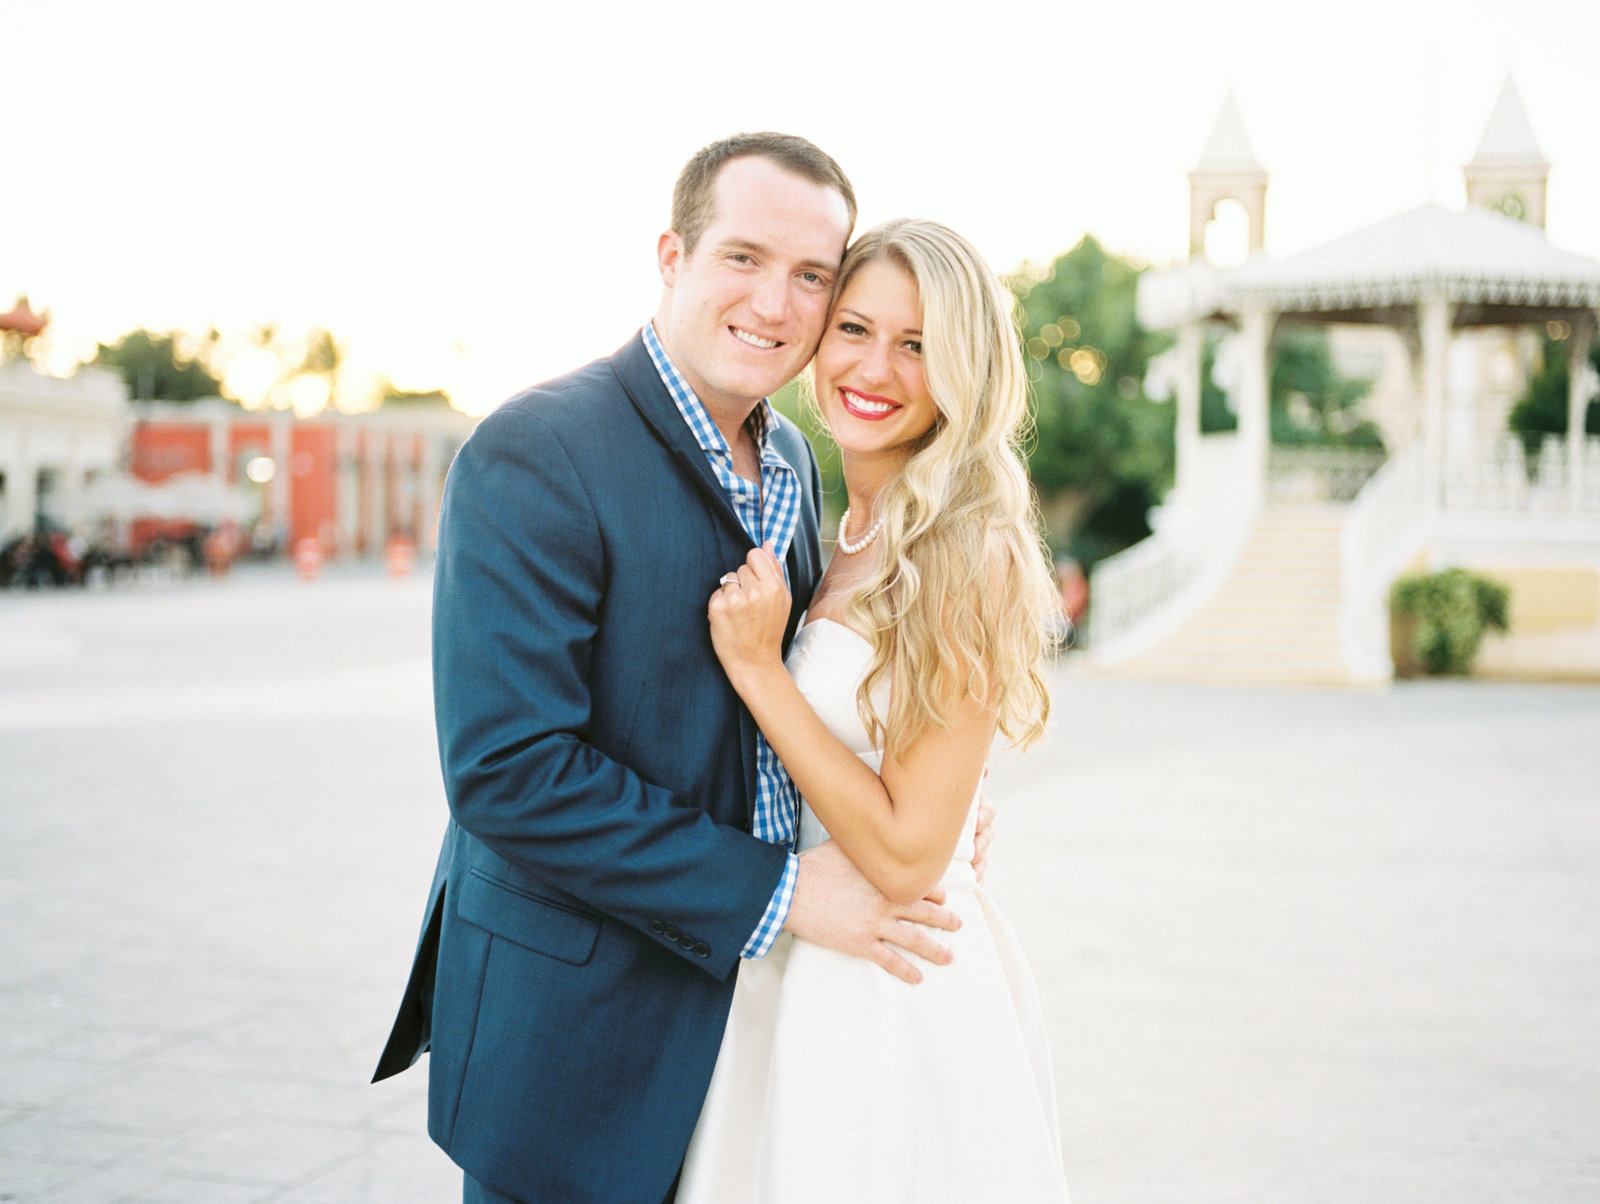 San jose del cabo engagement session